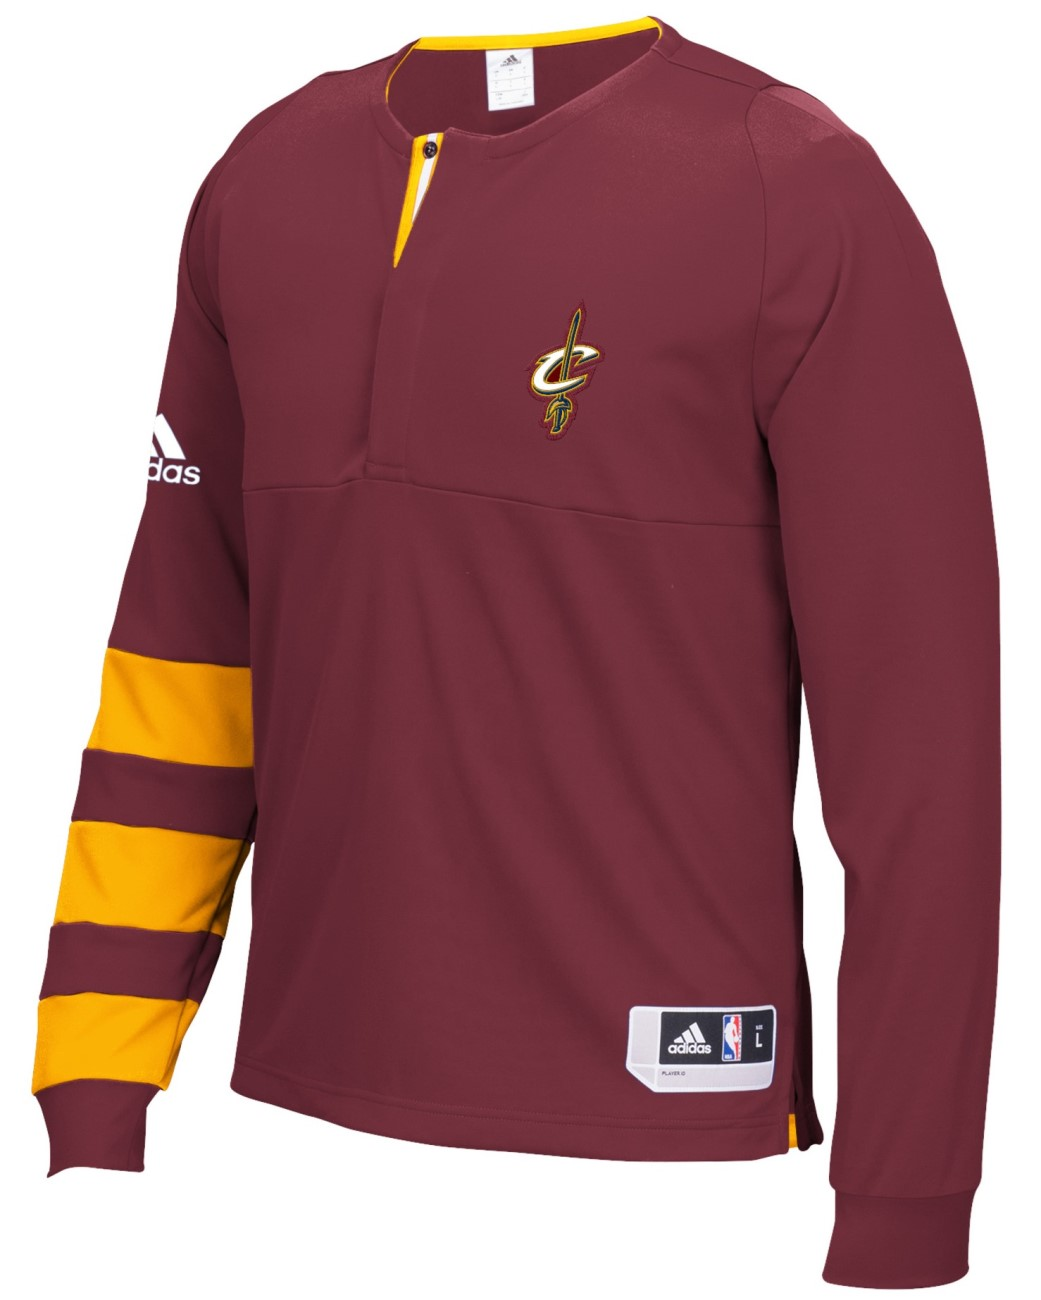 Cleveland Cavaliers Adidas 2016 NBA Men's On-Court Authentic L/S Shooting Shirt